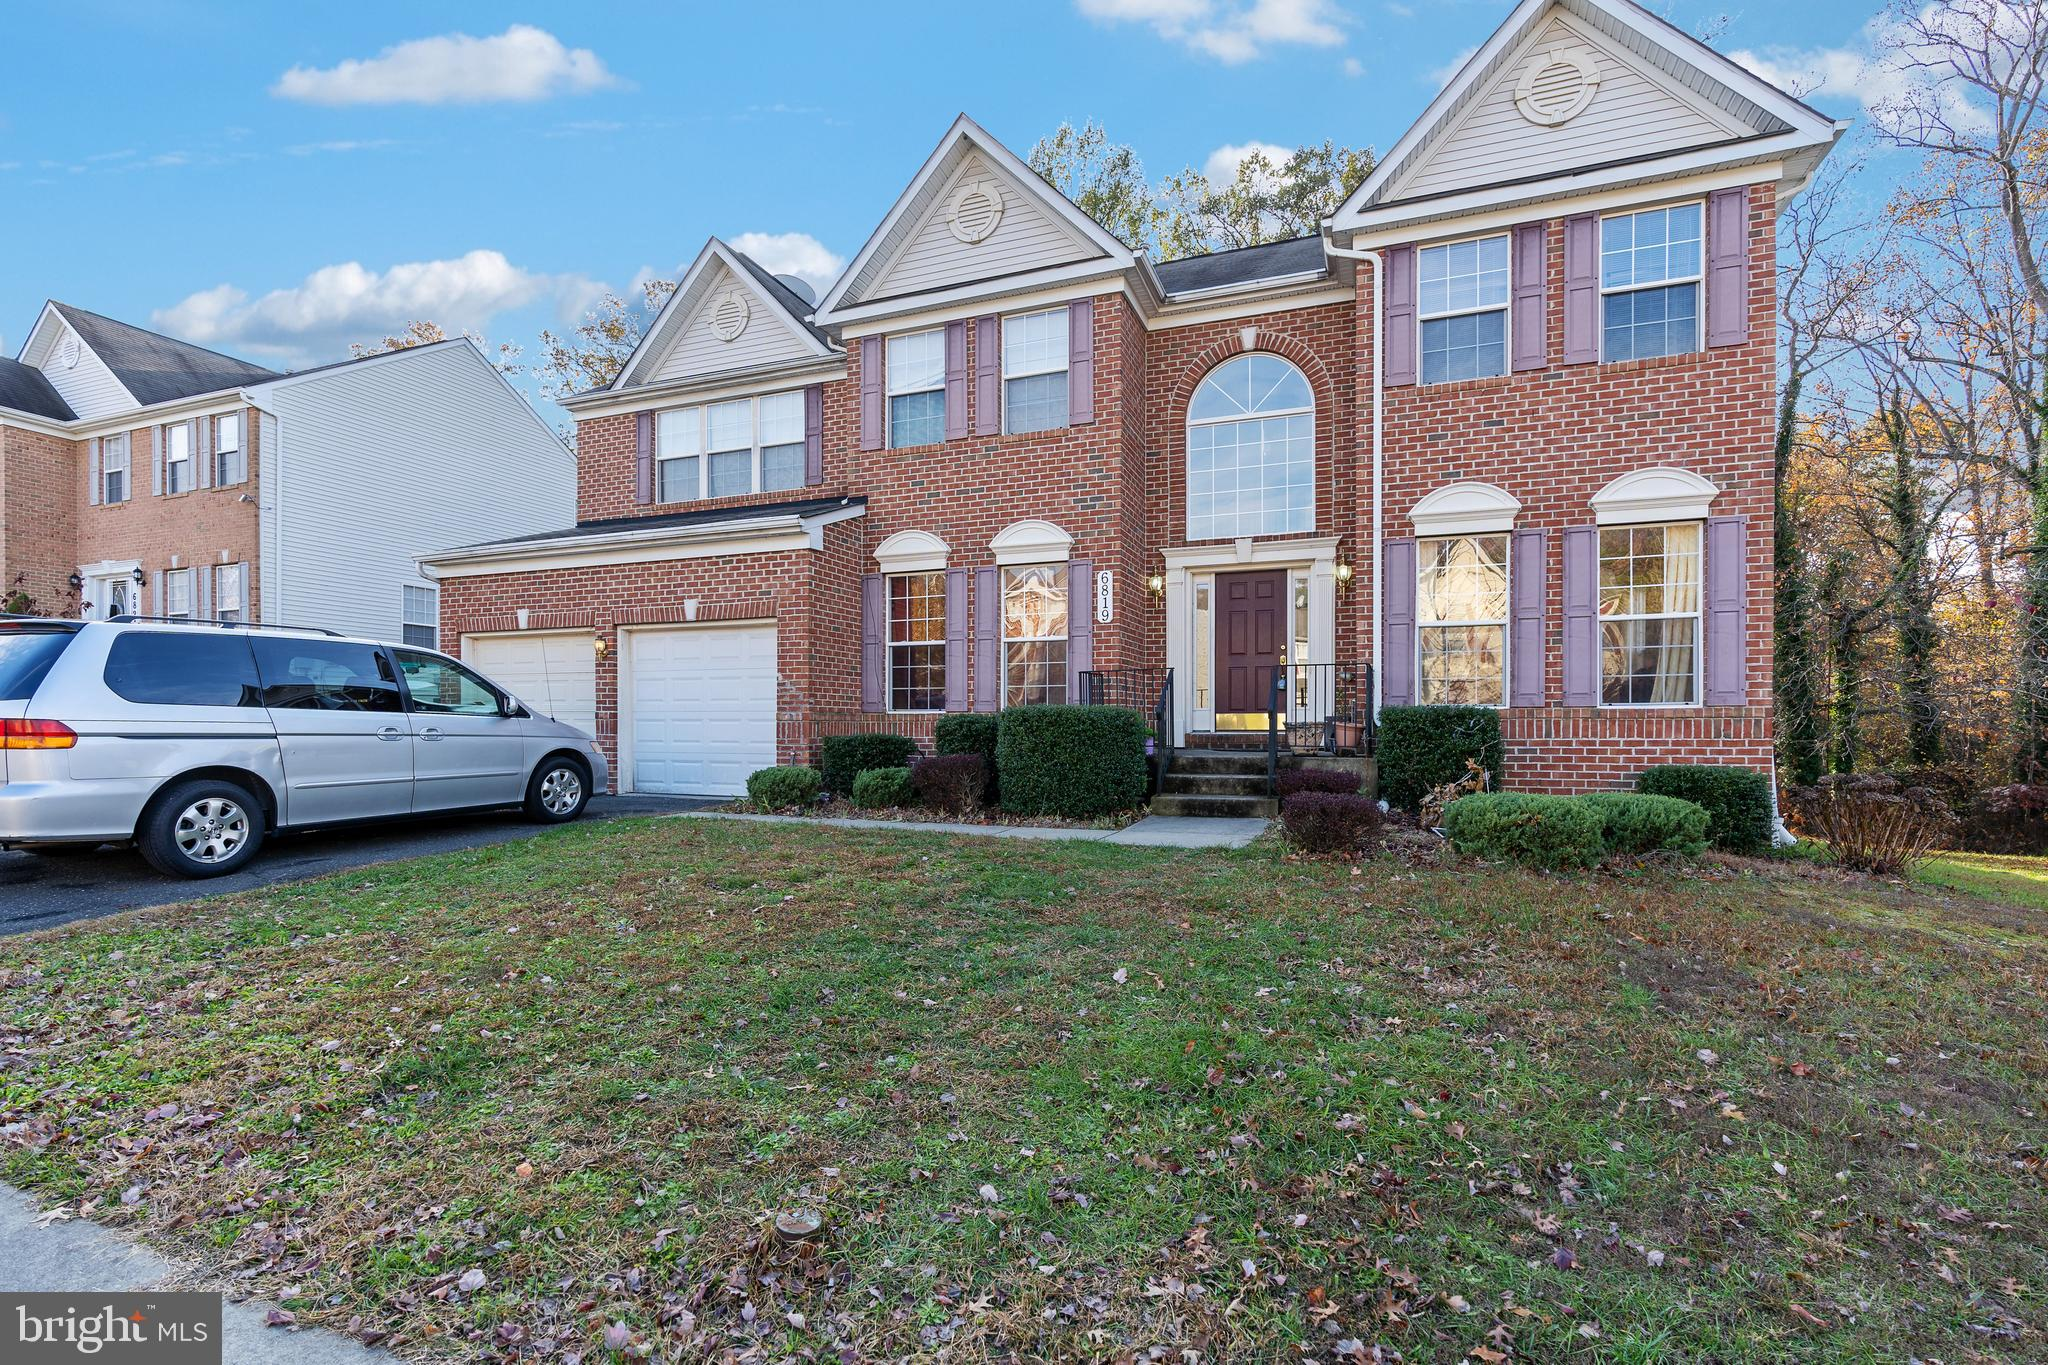 6819 ASHLEYS CROSSING COURT, TEMPLE HILLS, MD 20748